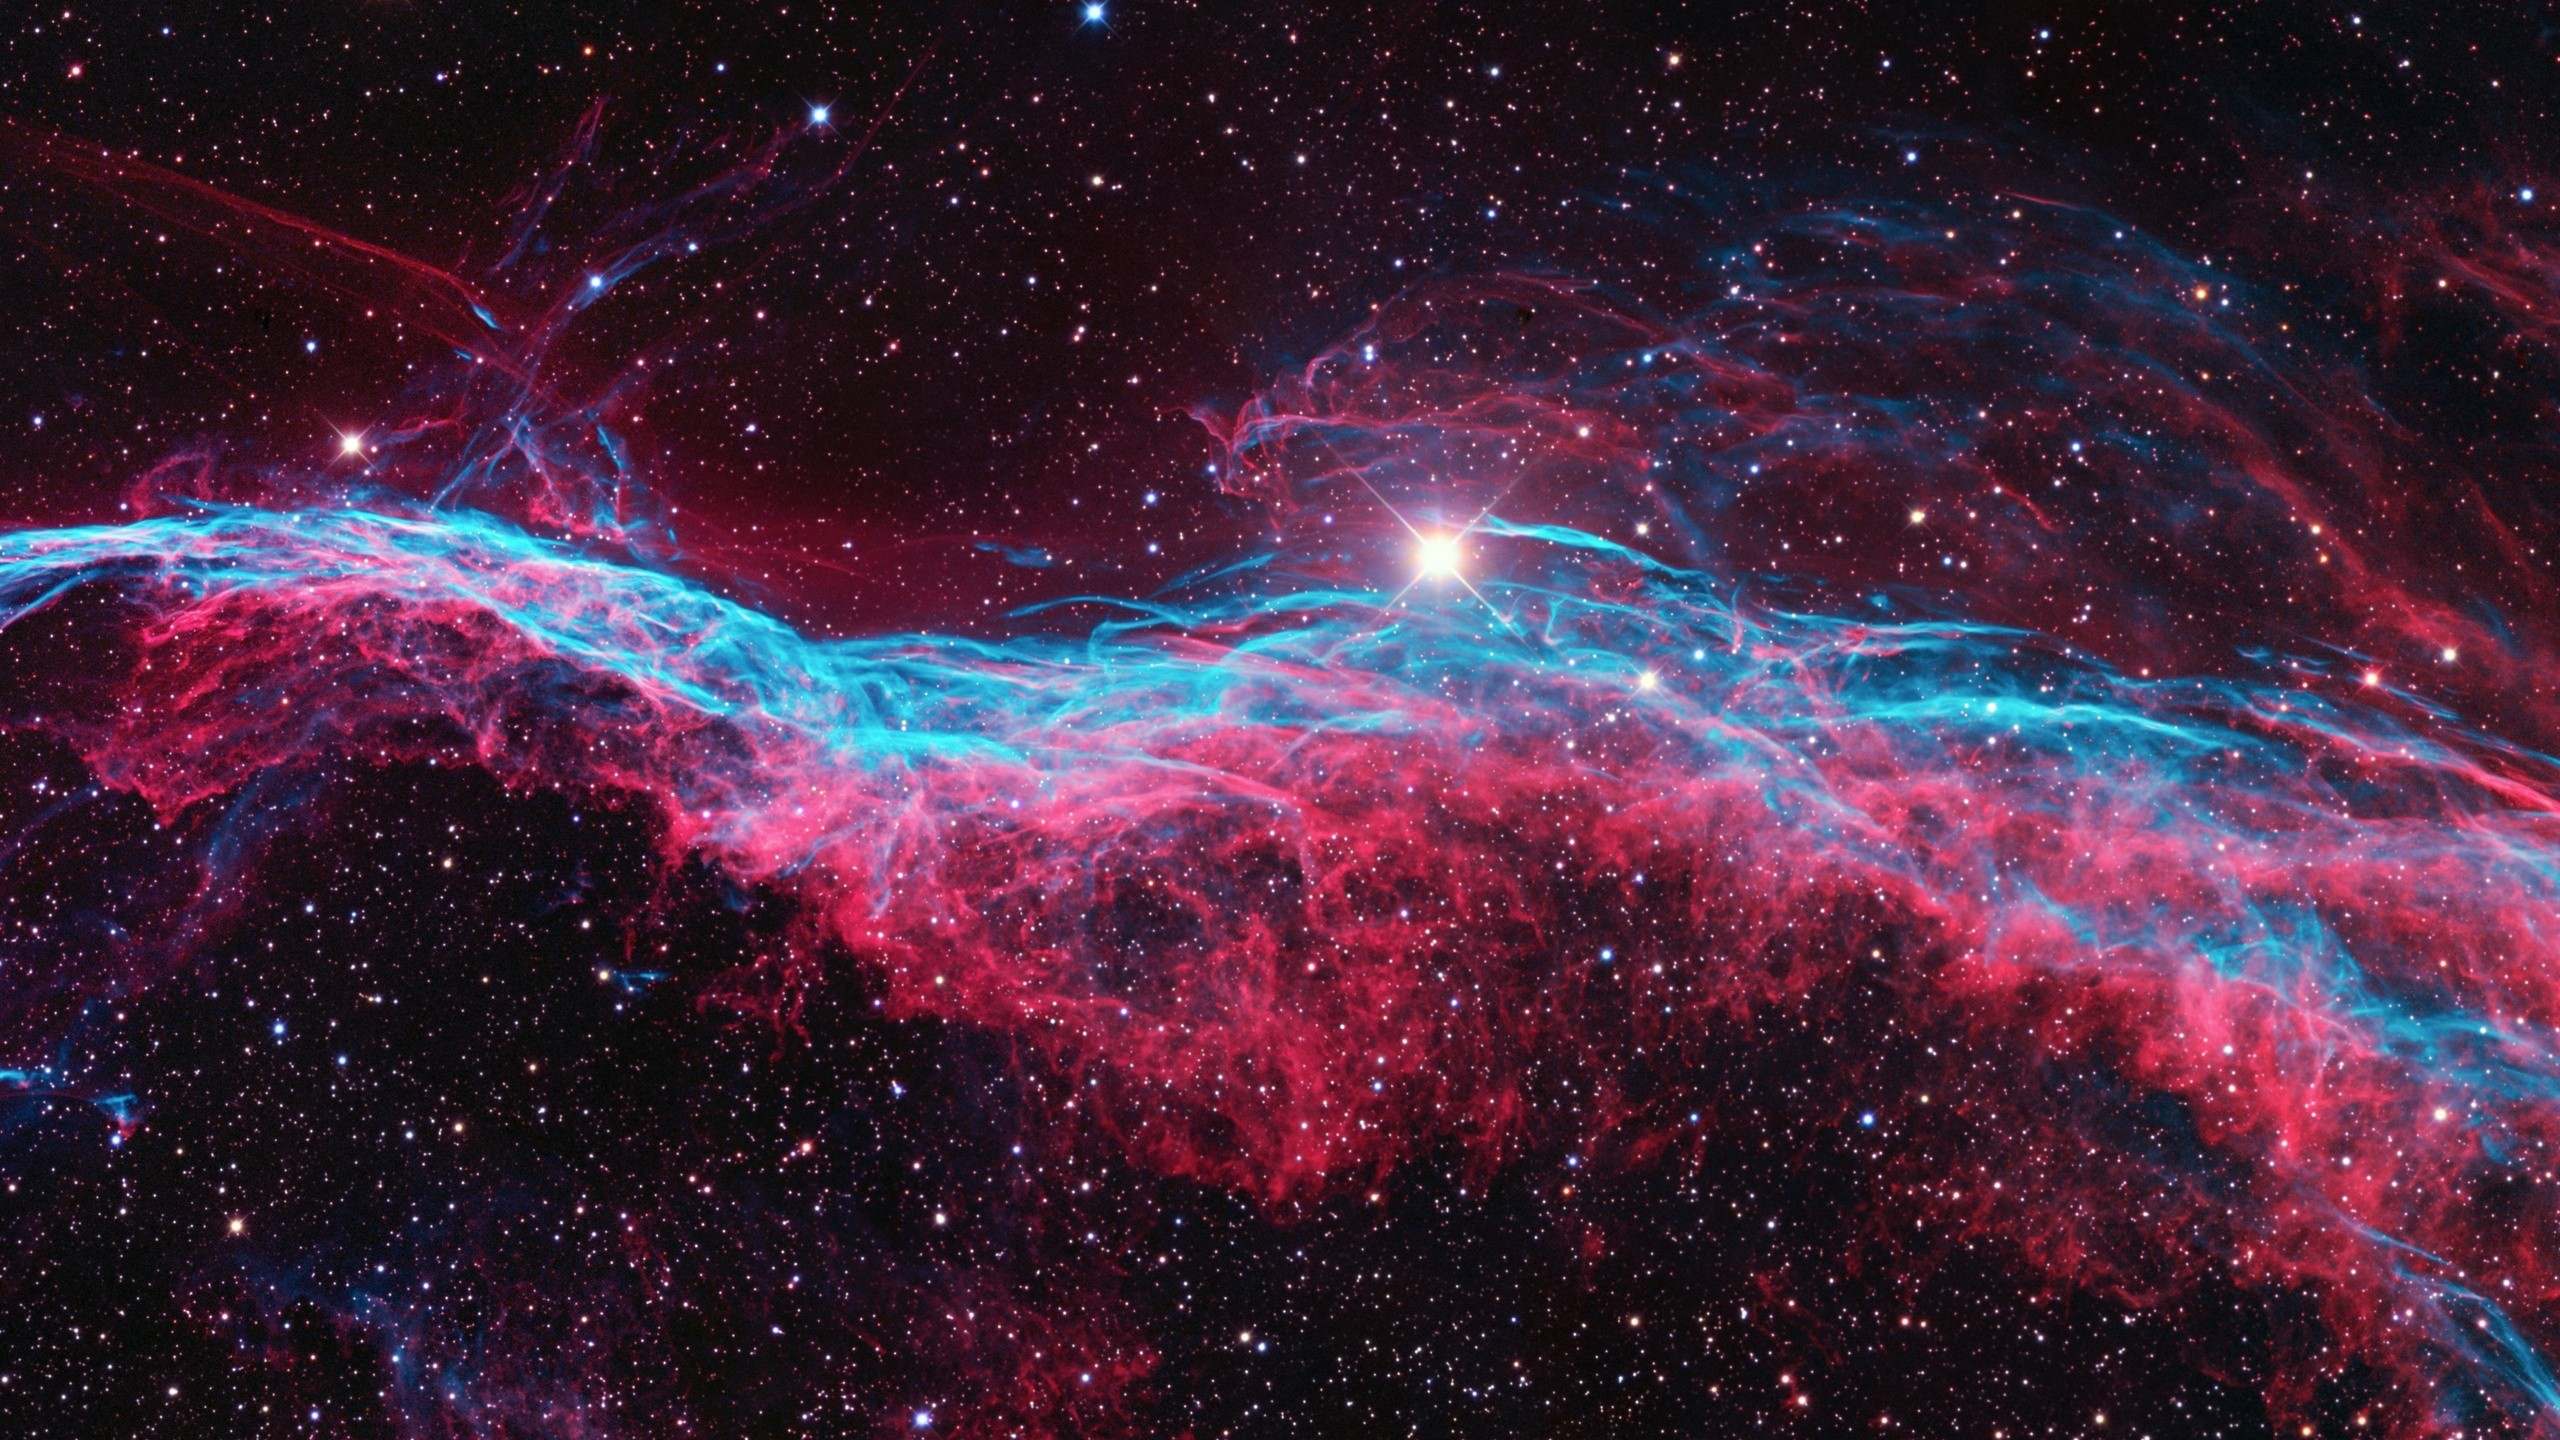 2560x1440 Space Wallpaper 81 Images